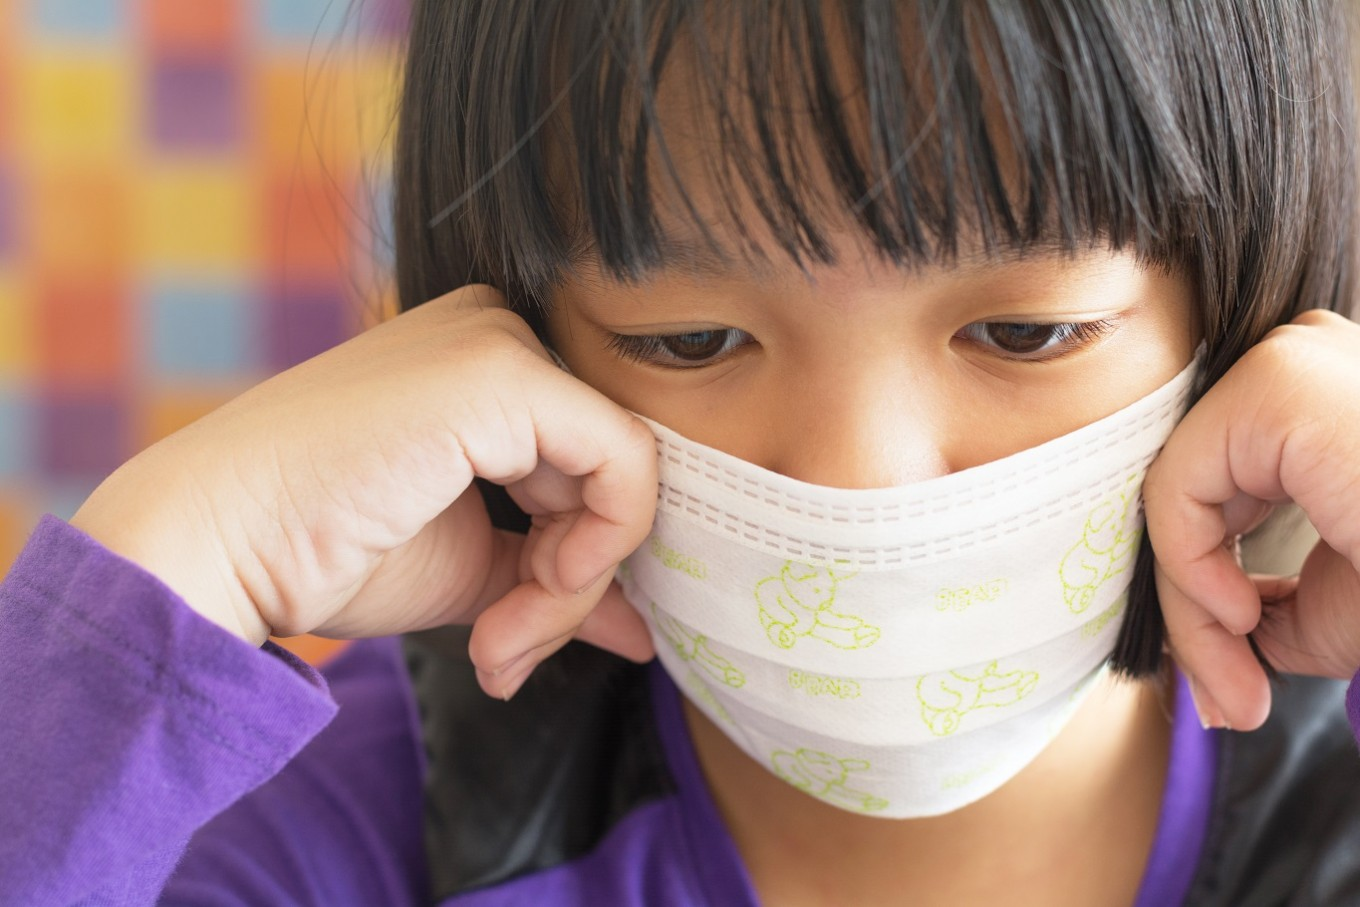 It's 'just' the flu? Let's take better precautions